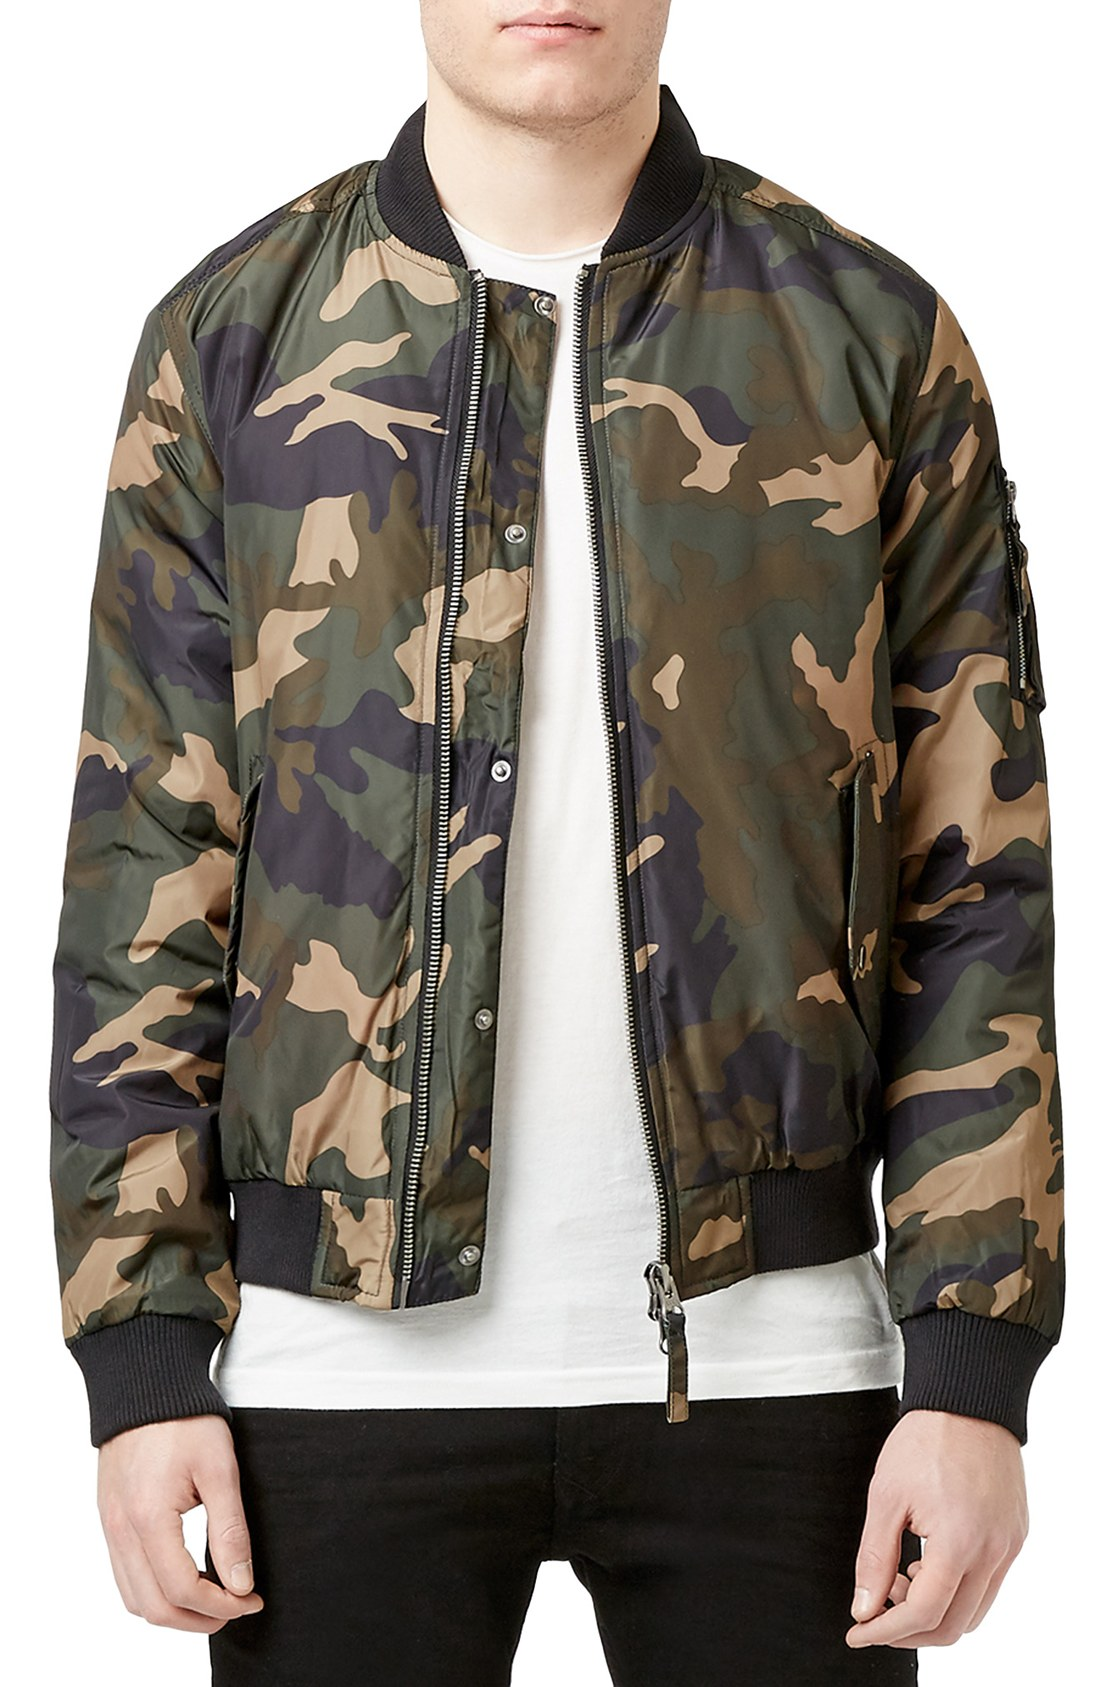 Bomber Jacket Styles for Men (18)